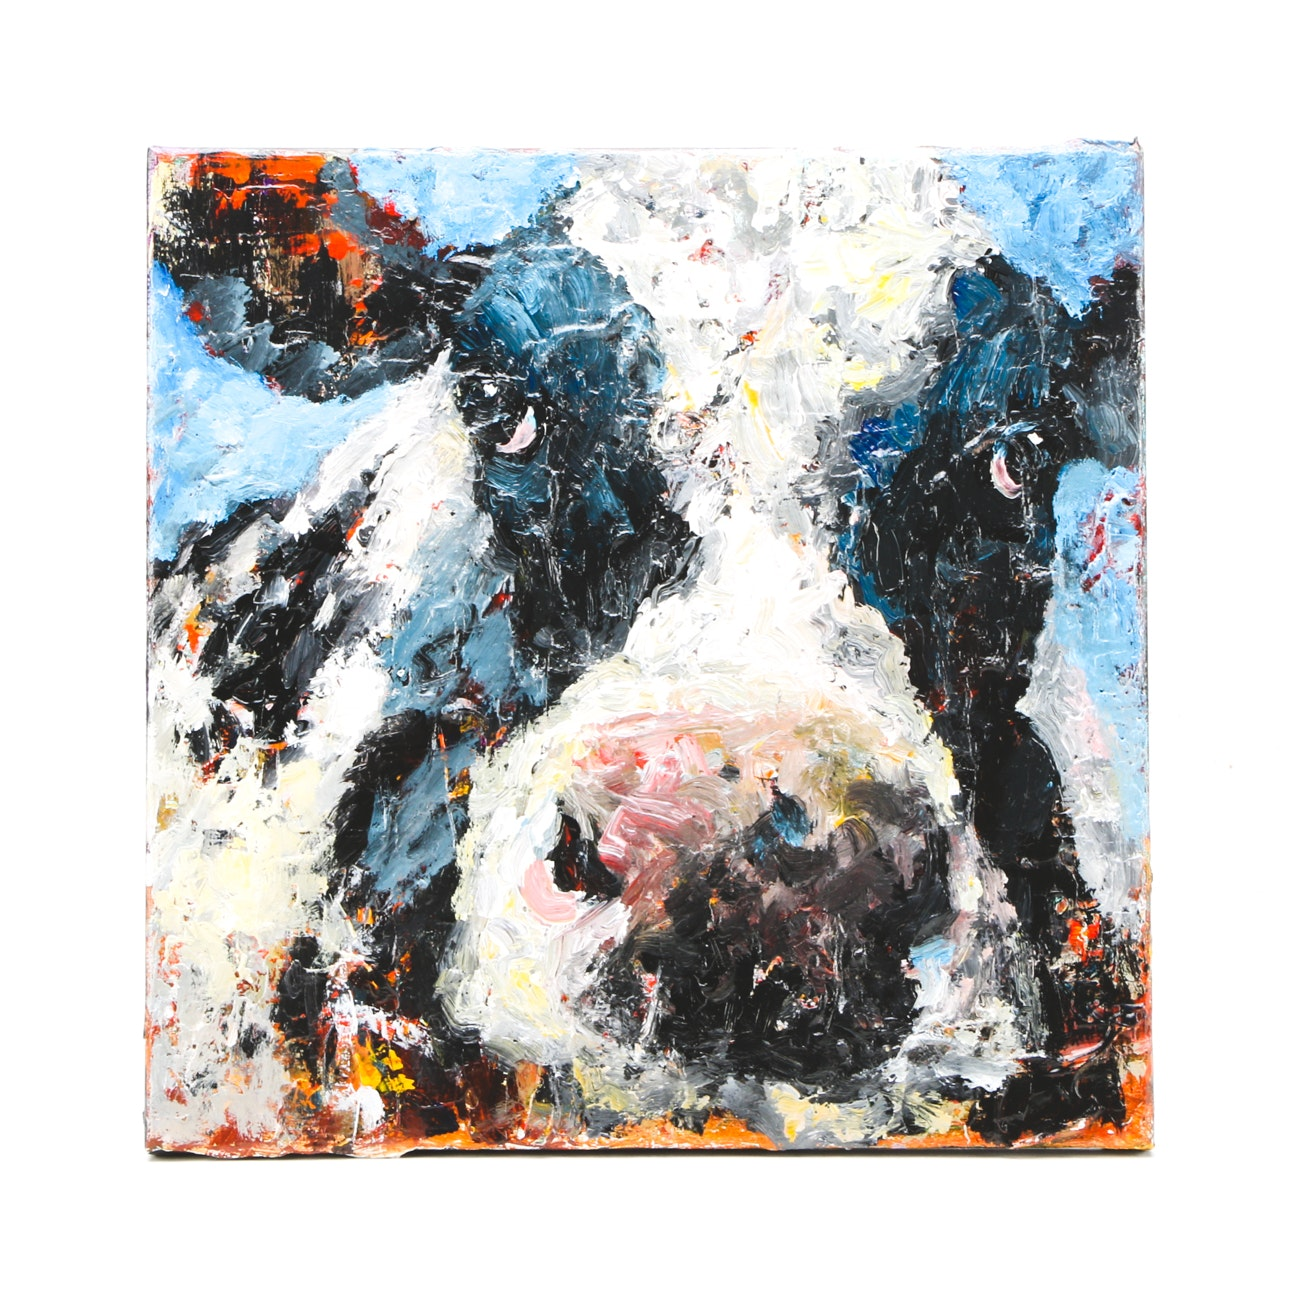 Elle Raines Acrylic Painting on Canvas of a Cow